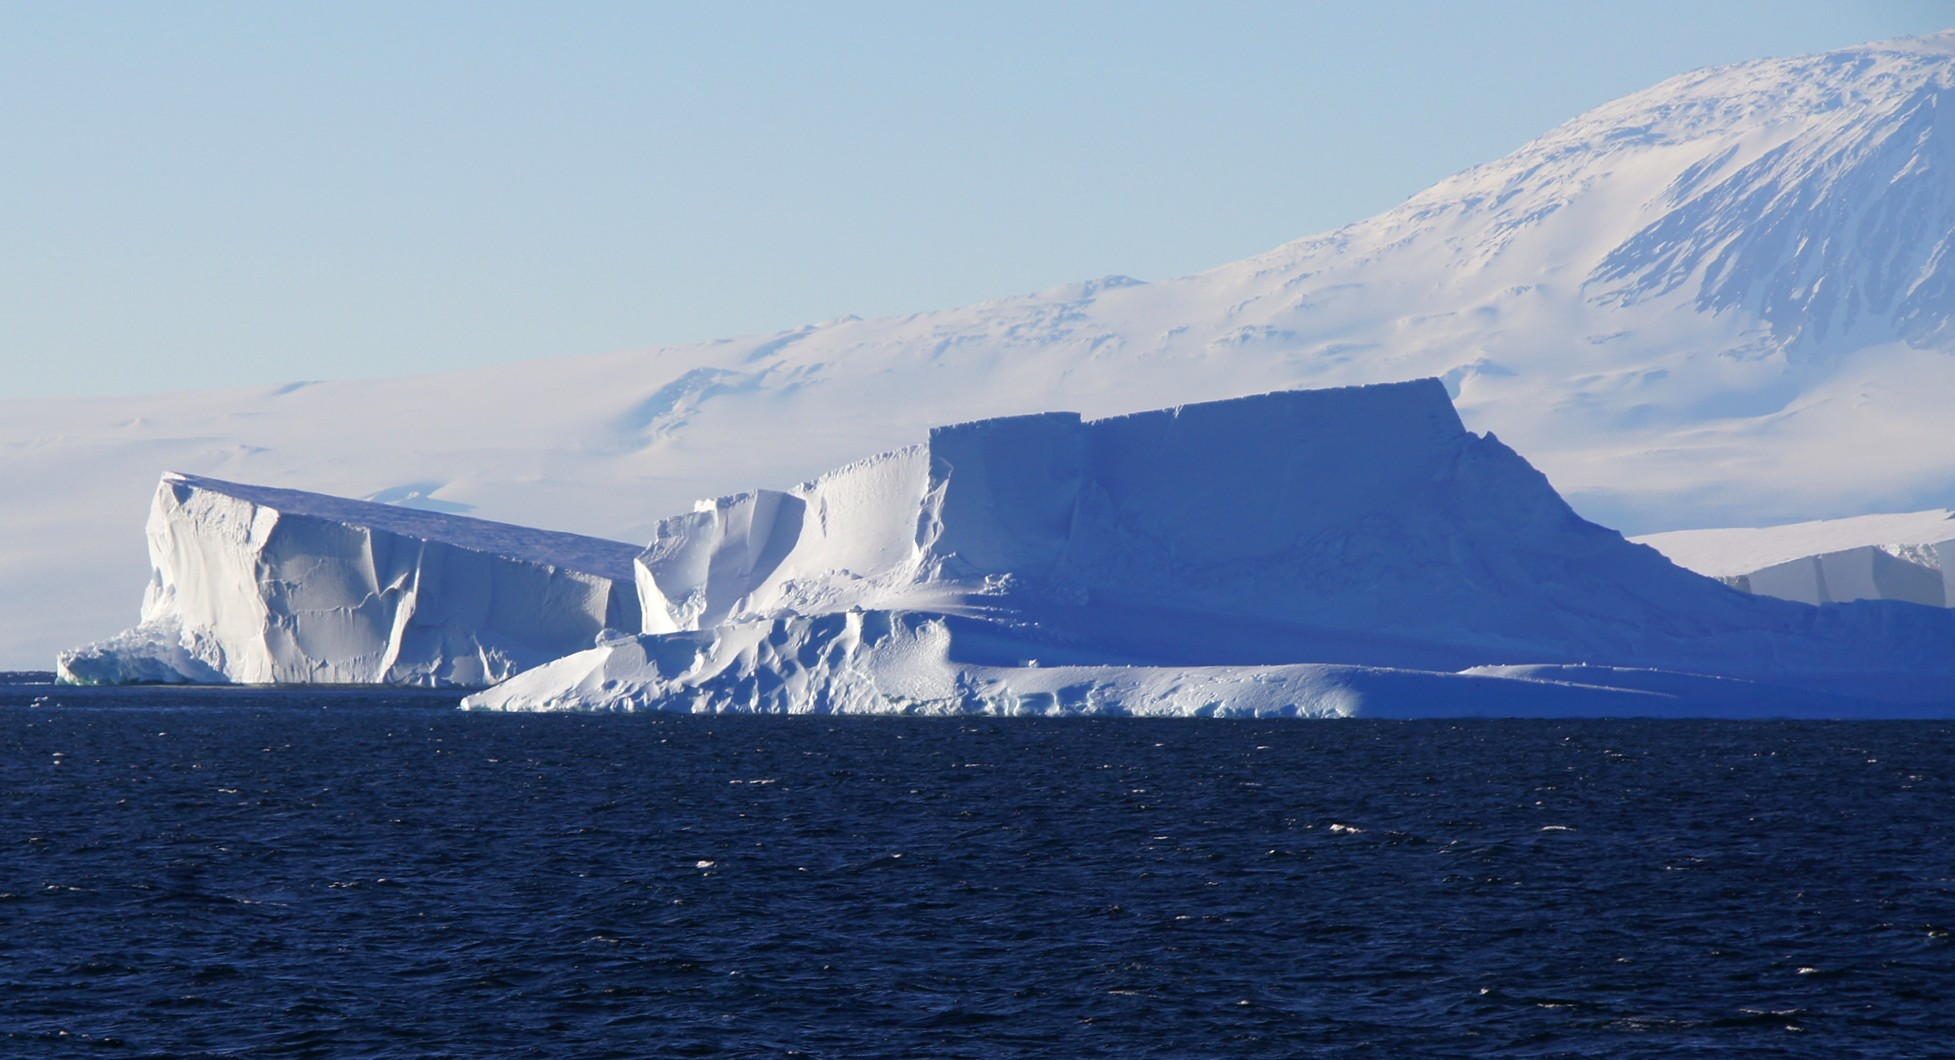 Which Ocean Contains Many Iceberg